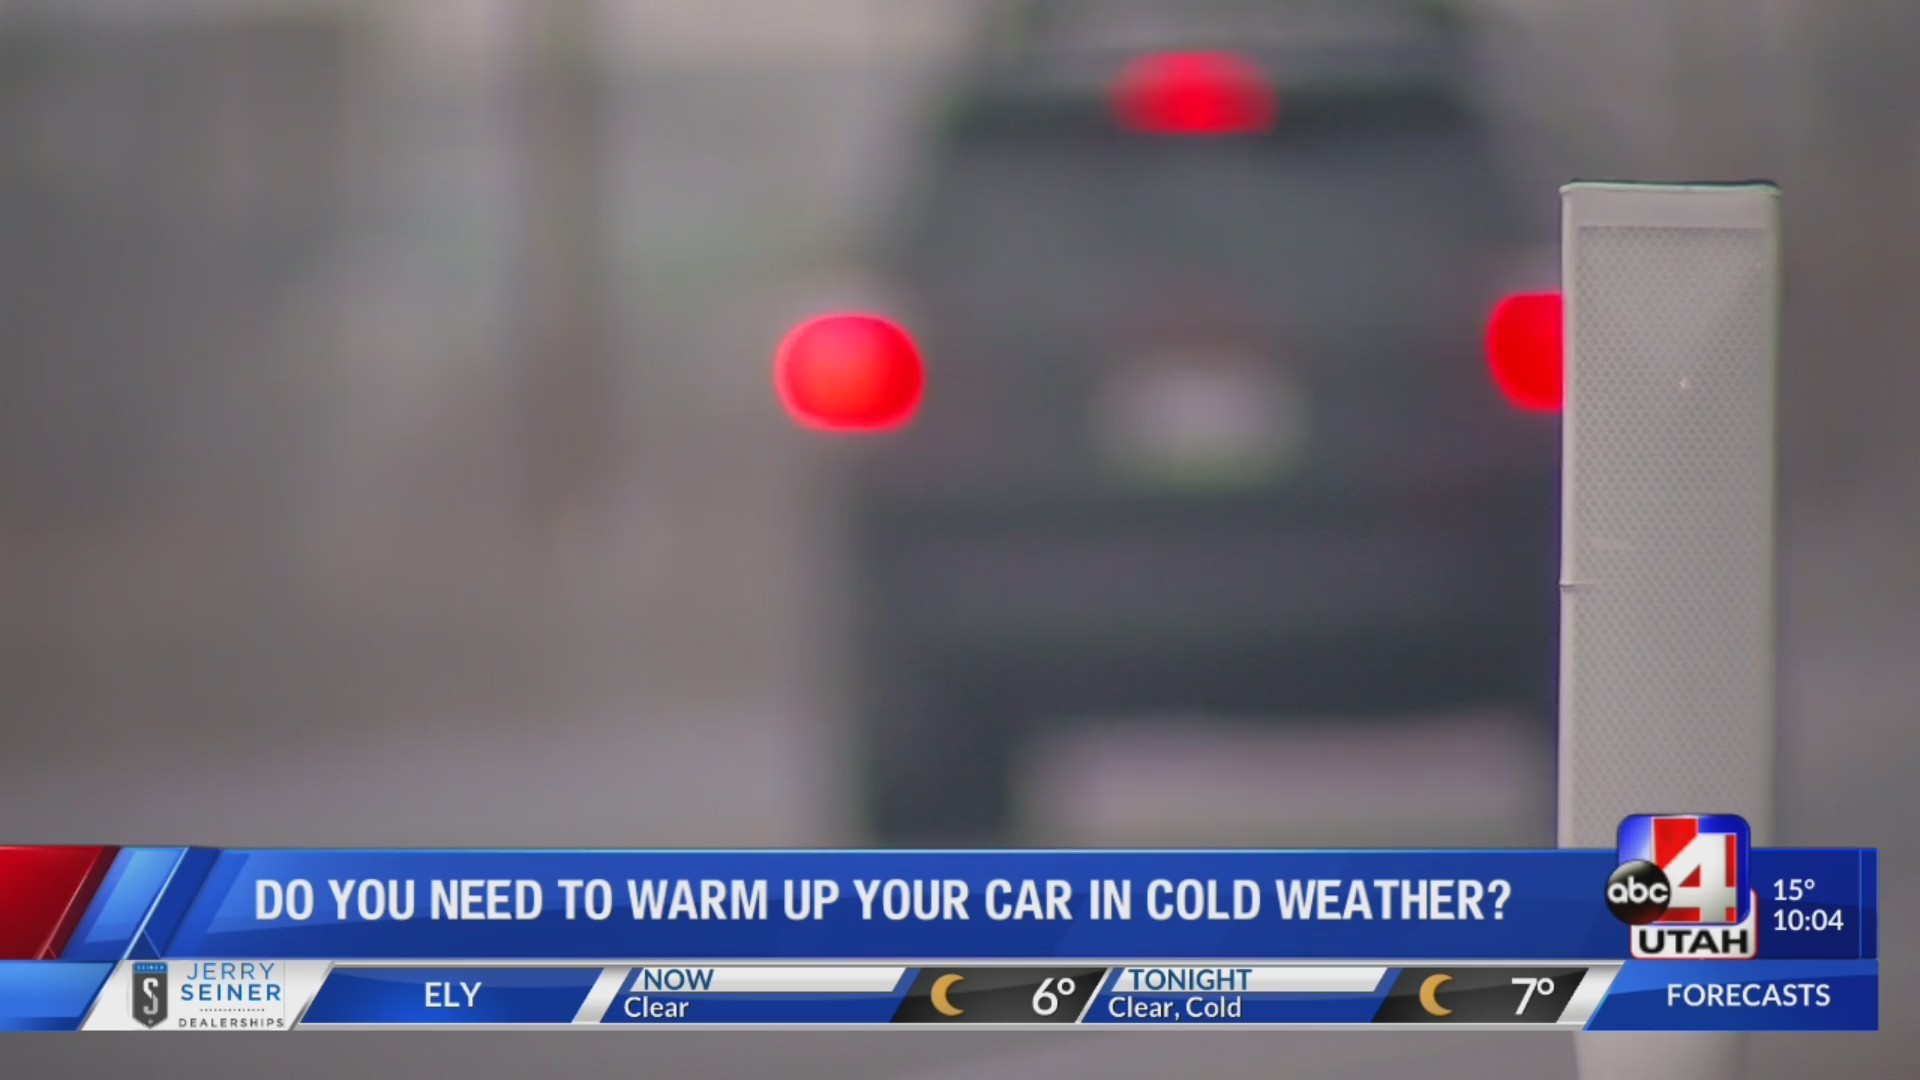 Do you need to warm up your car in cold weather?